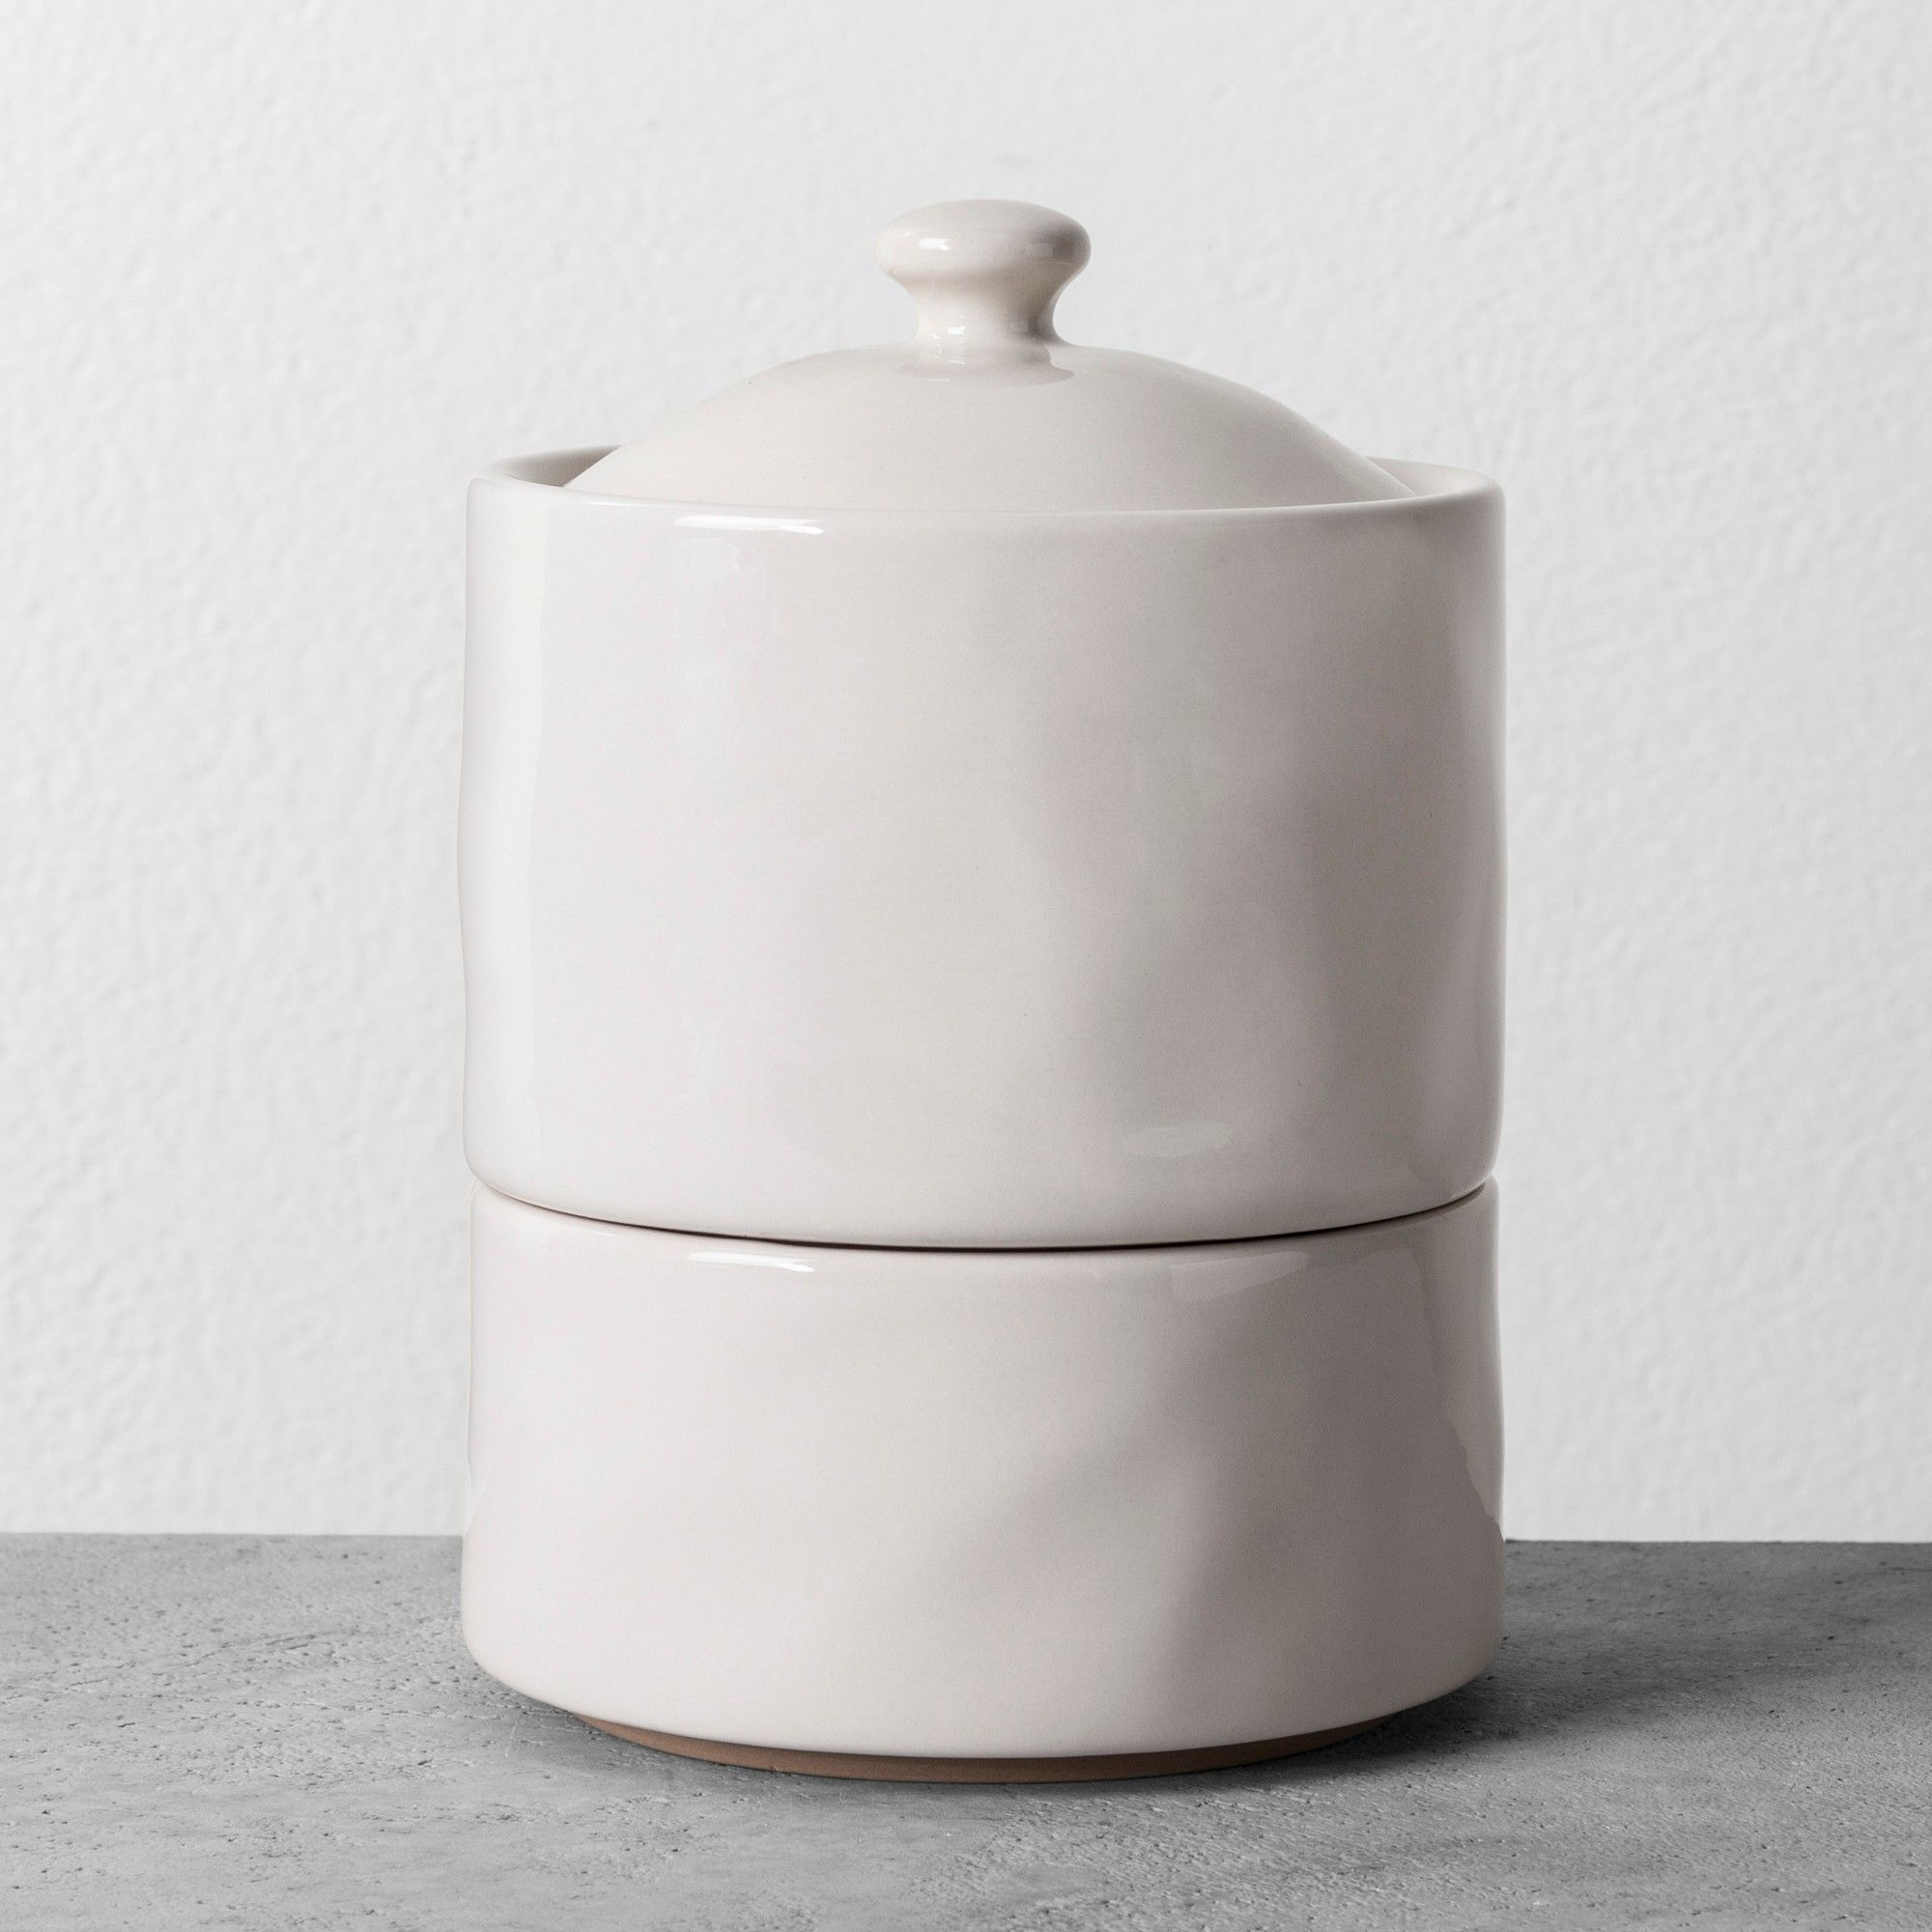 Bathroom Canisters Bath Canister White Hearth Hand With Magnolia In 2019